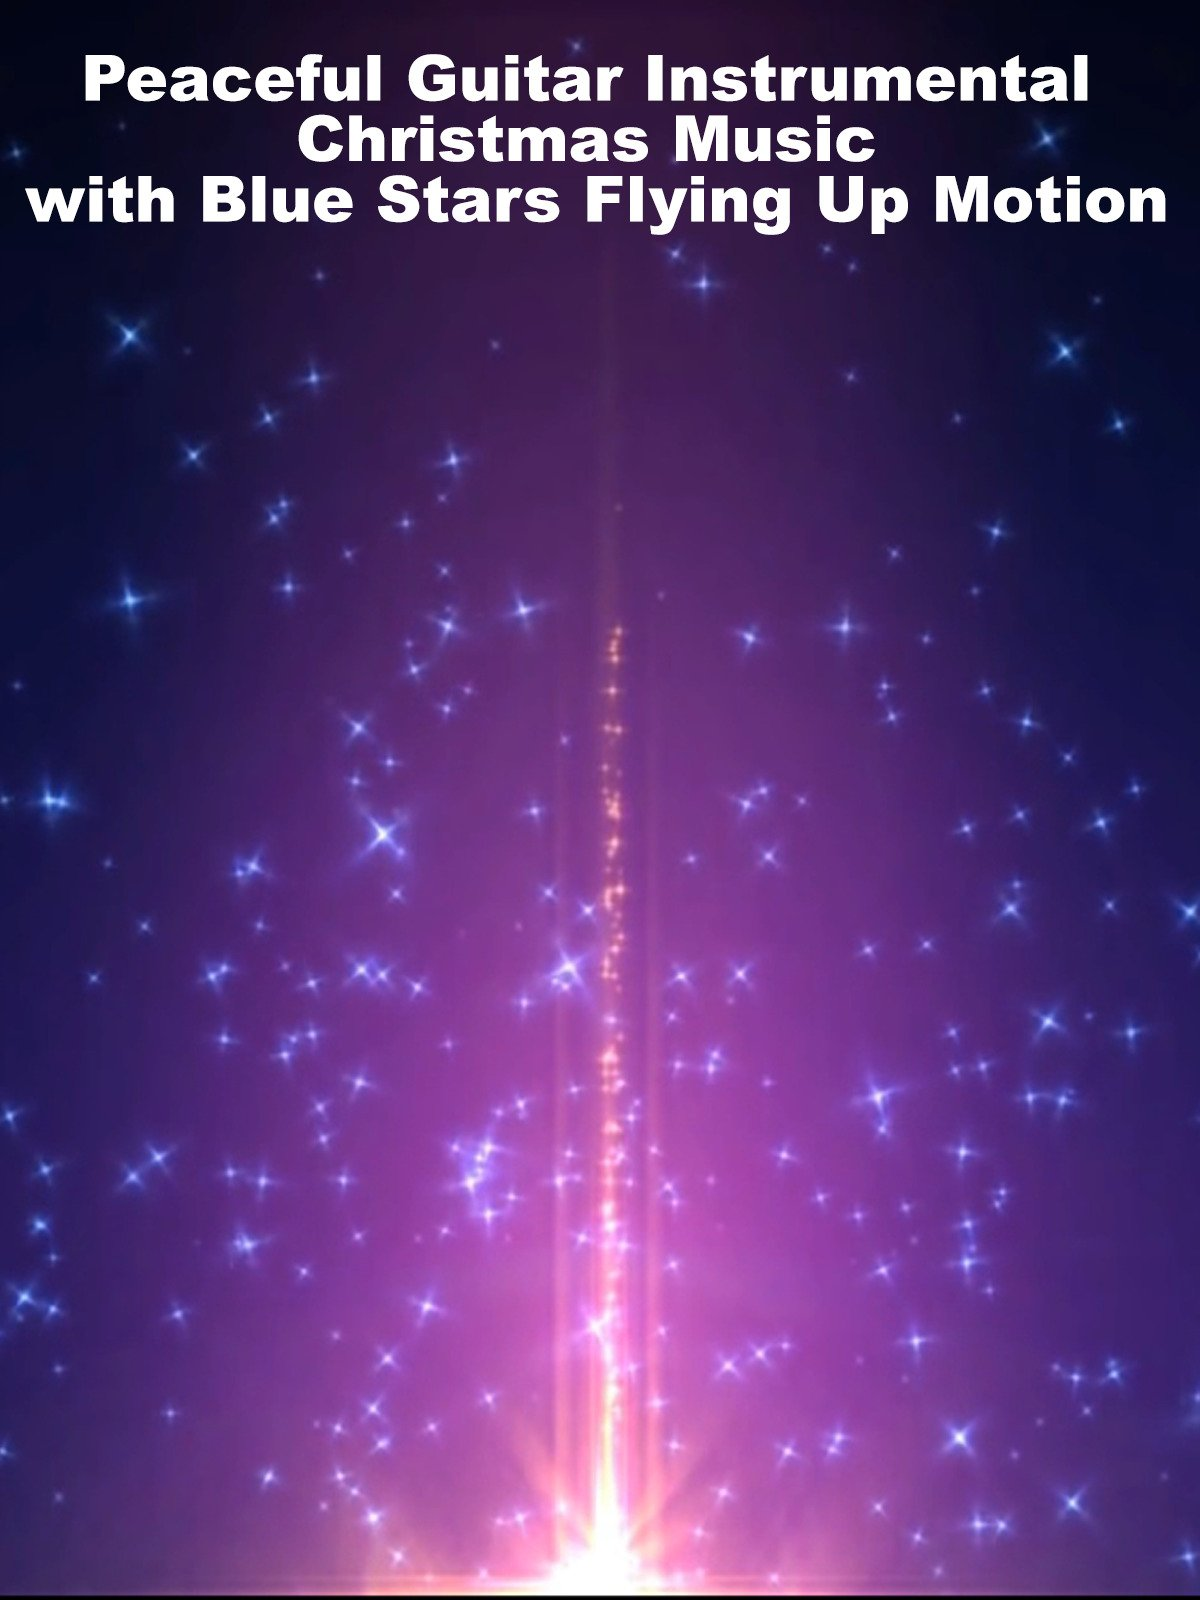 Peaceful Guitar Instrumental Christmas Music with Blue Stars Flying Up Motion